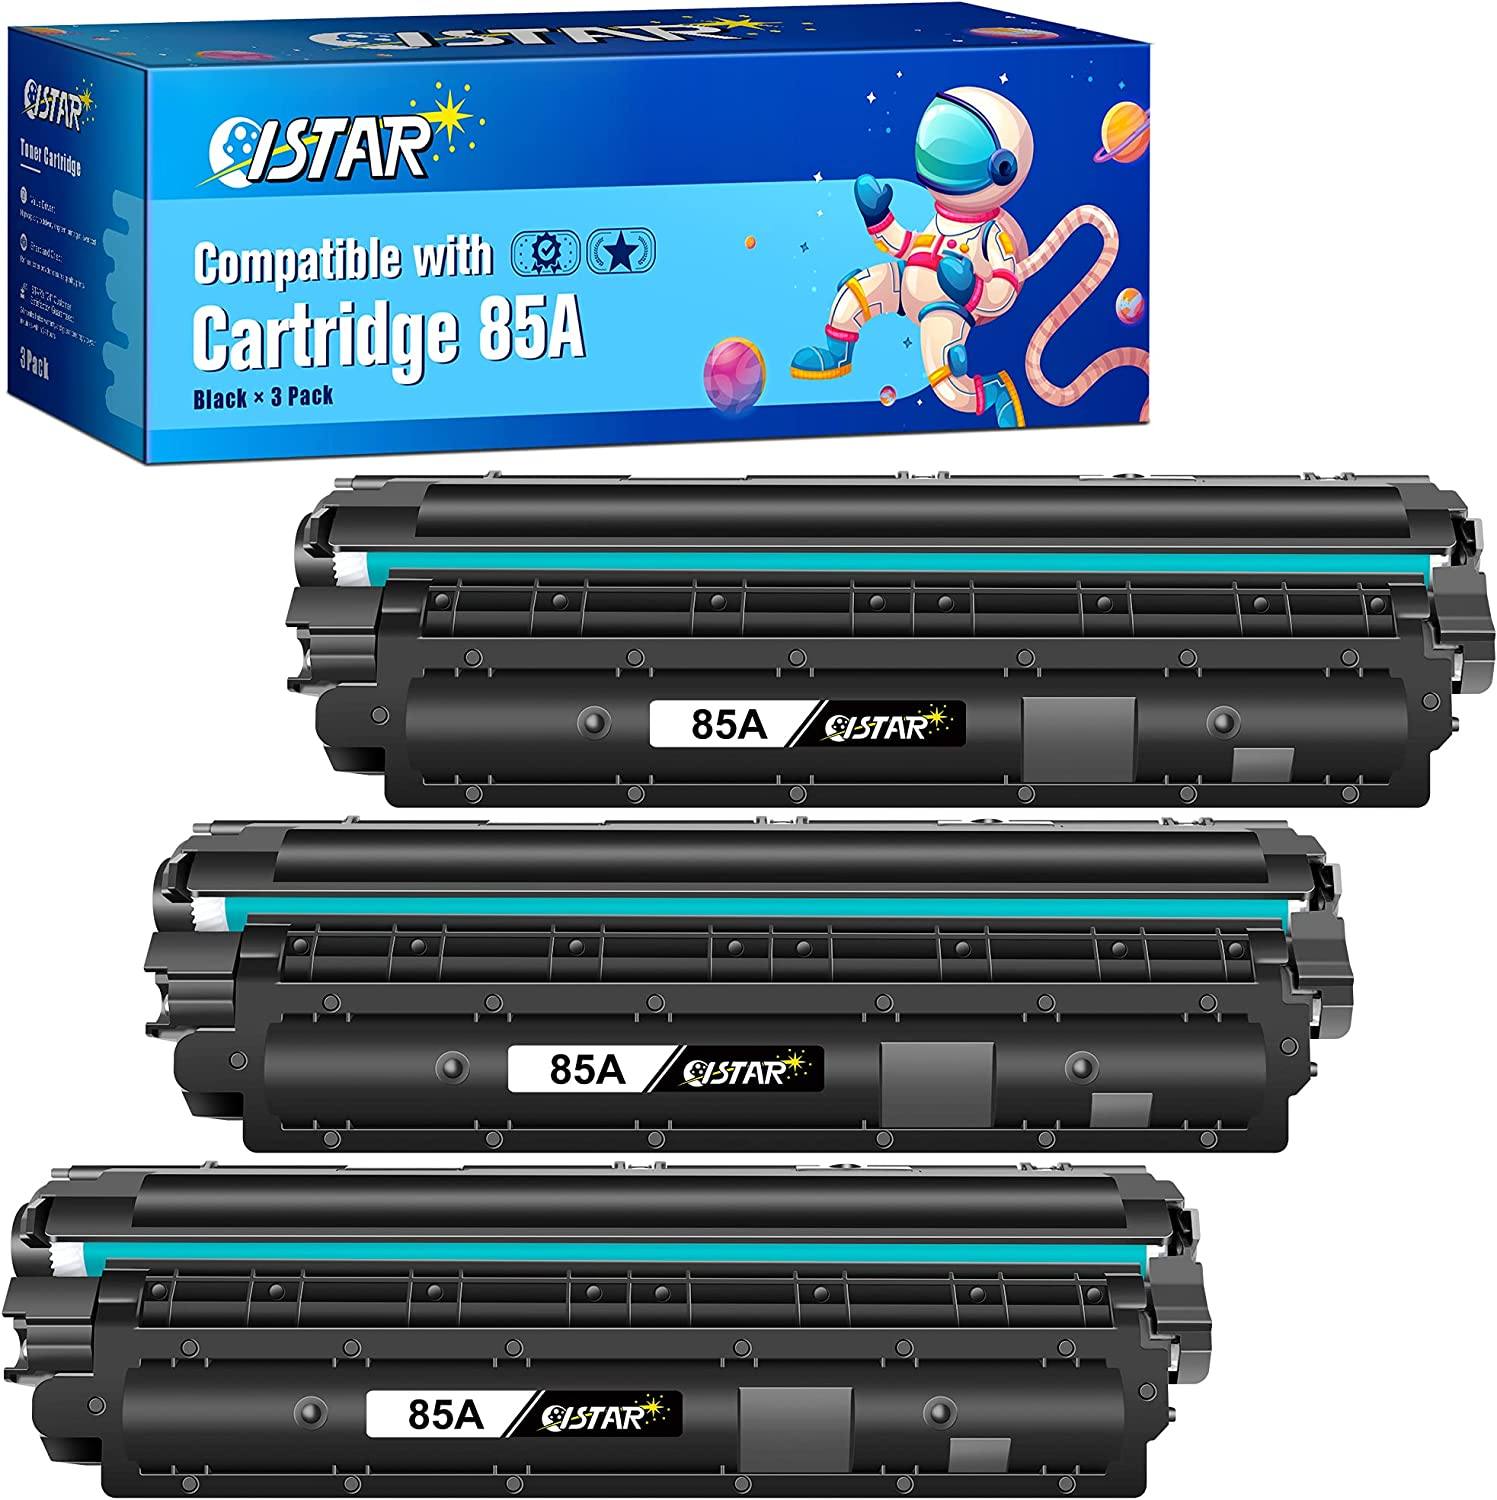 ISTAR Compatible Toner Cartridge Replacement for HP 85A CE285A to use with Laserjet Pro P1102w P1109w M1212nf M1132 M1138 M1139 M1219nf M1217nfw Printer (3 Black, High Yield)